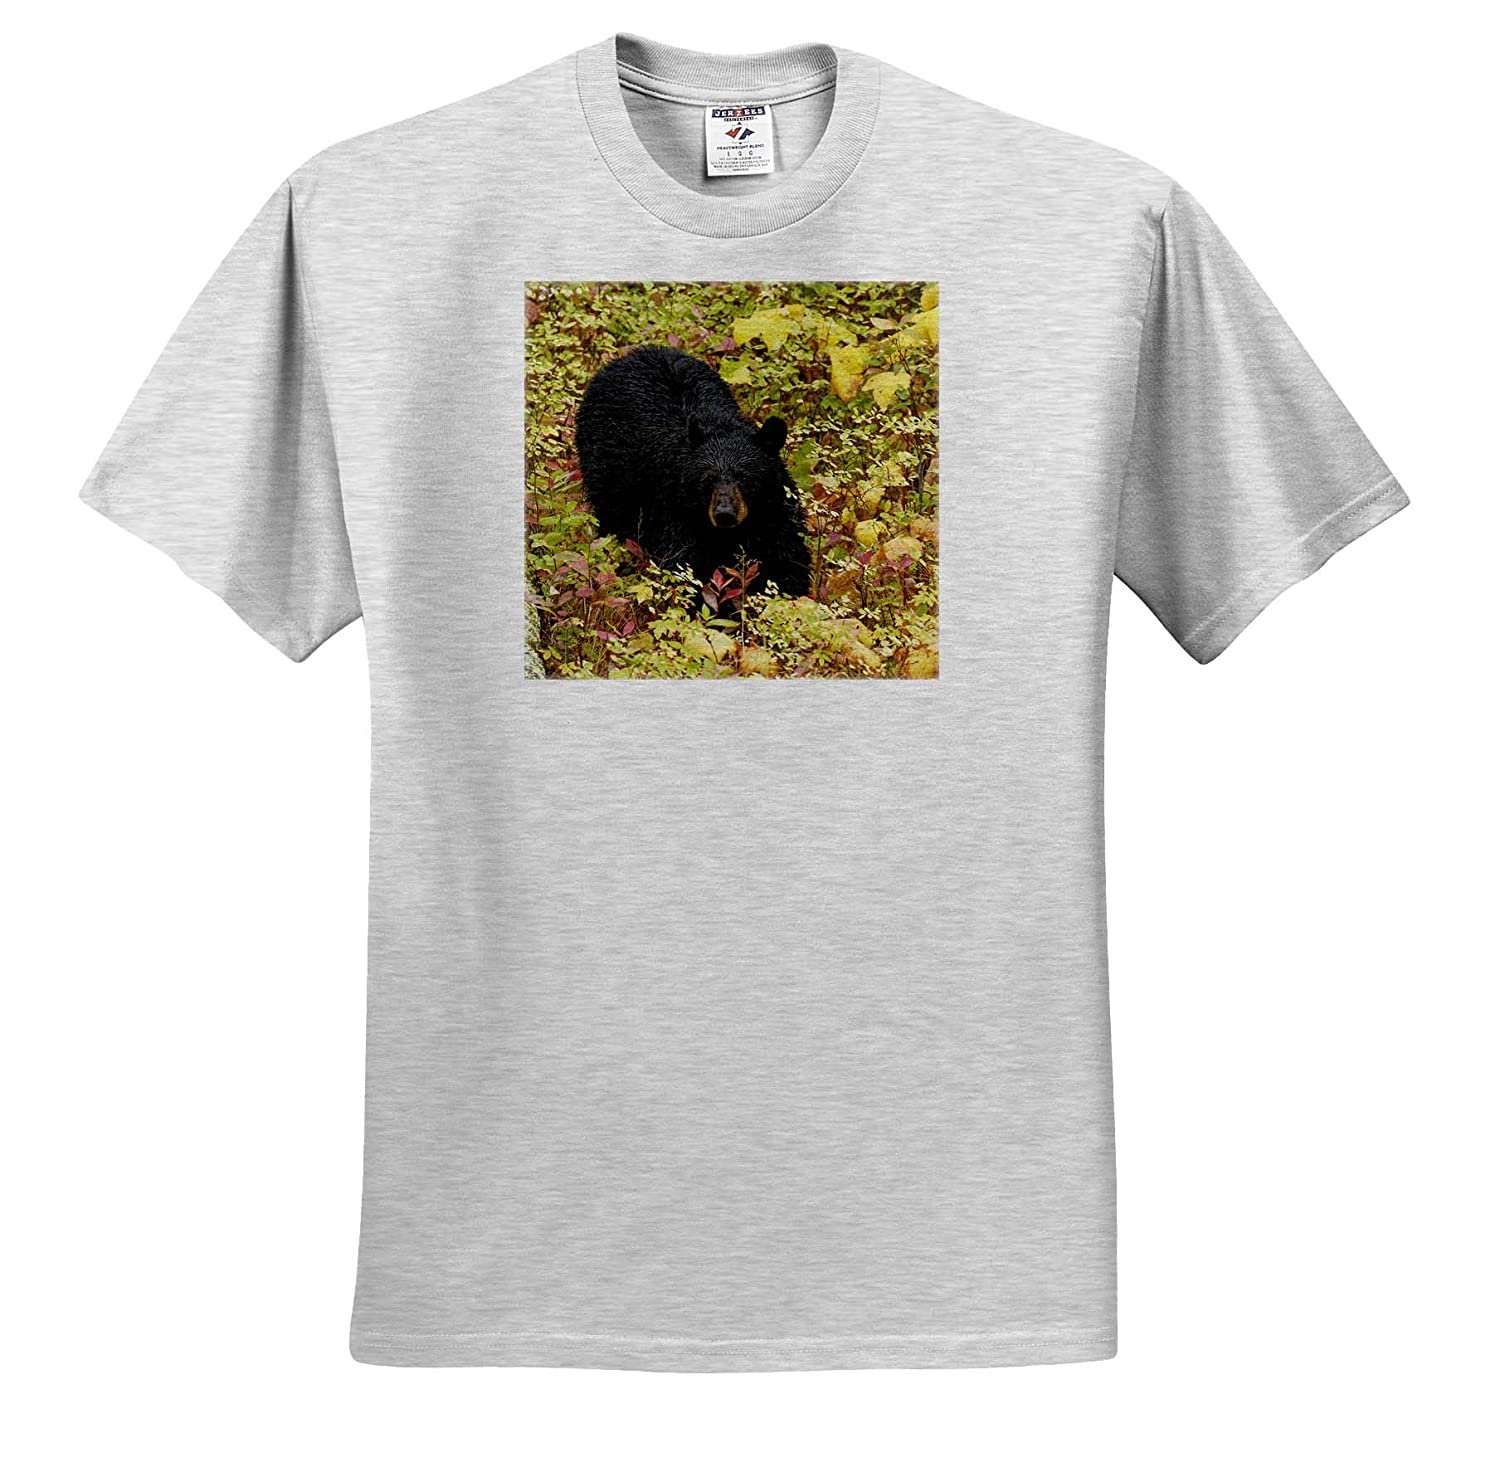 ts/_314892 Bears Yellowstone National Park - Adult T-Shirt XL Black Bear in Autumn Foliage 3dRose Danita Delimont